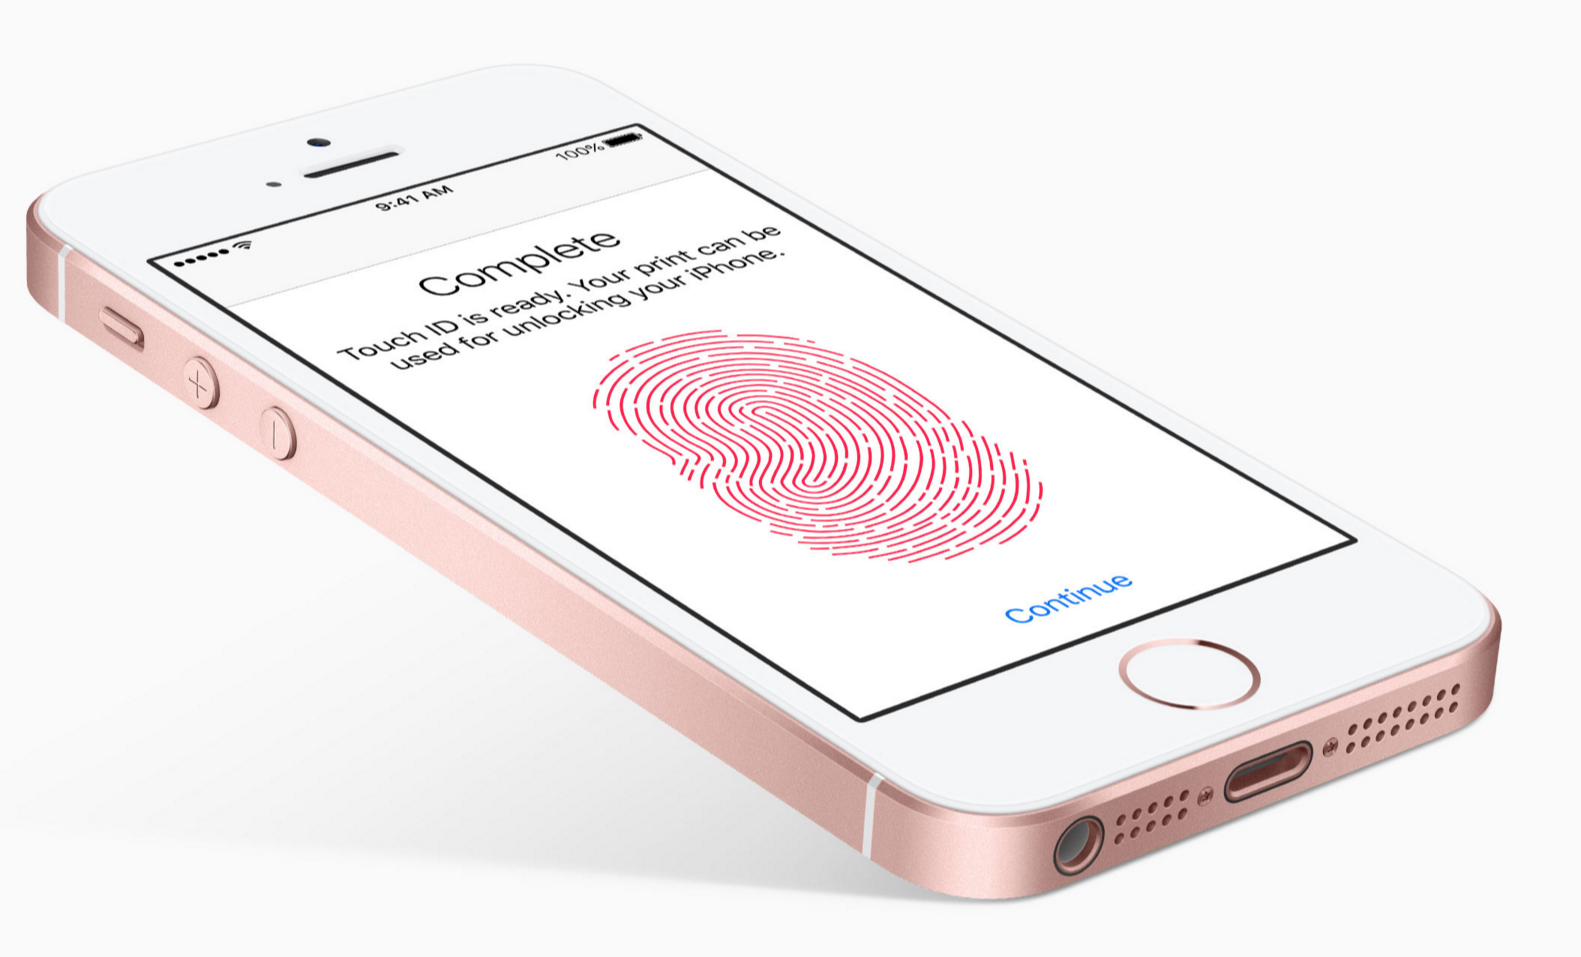 iPhone SE TouchID